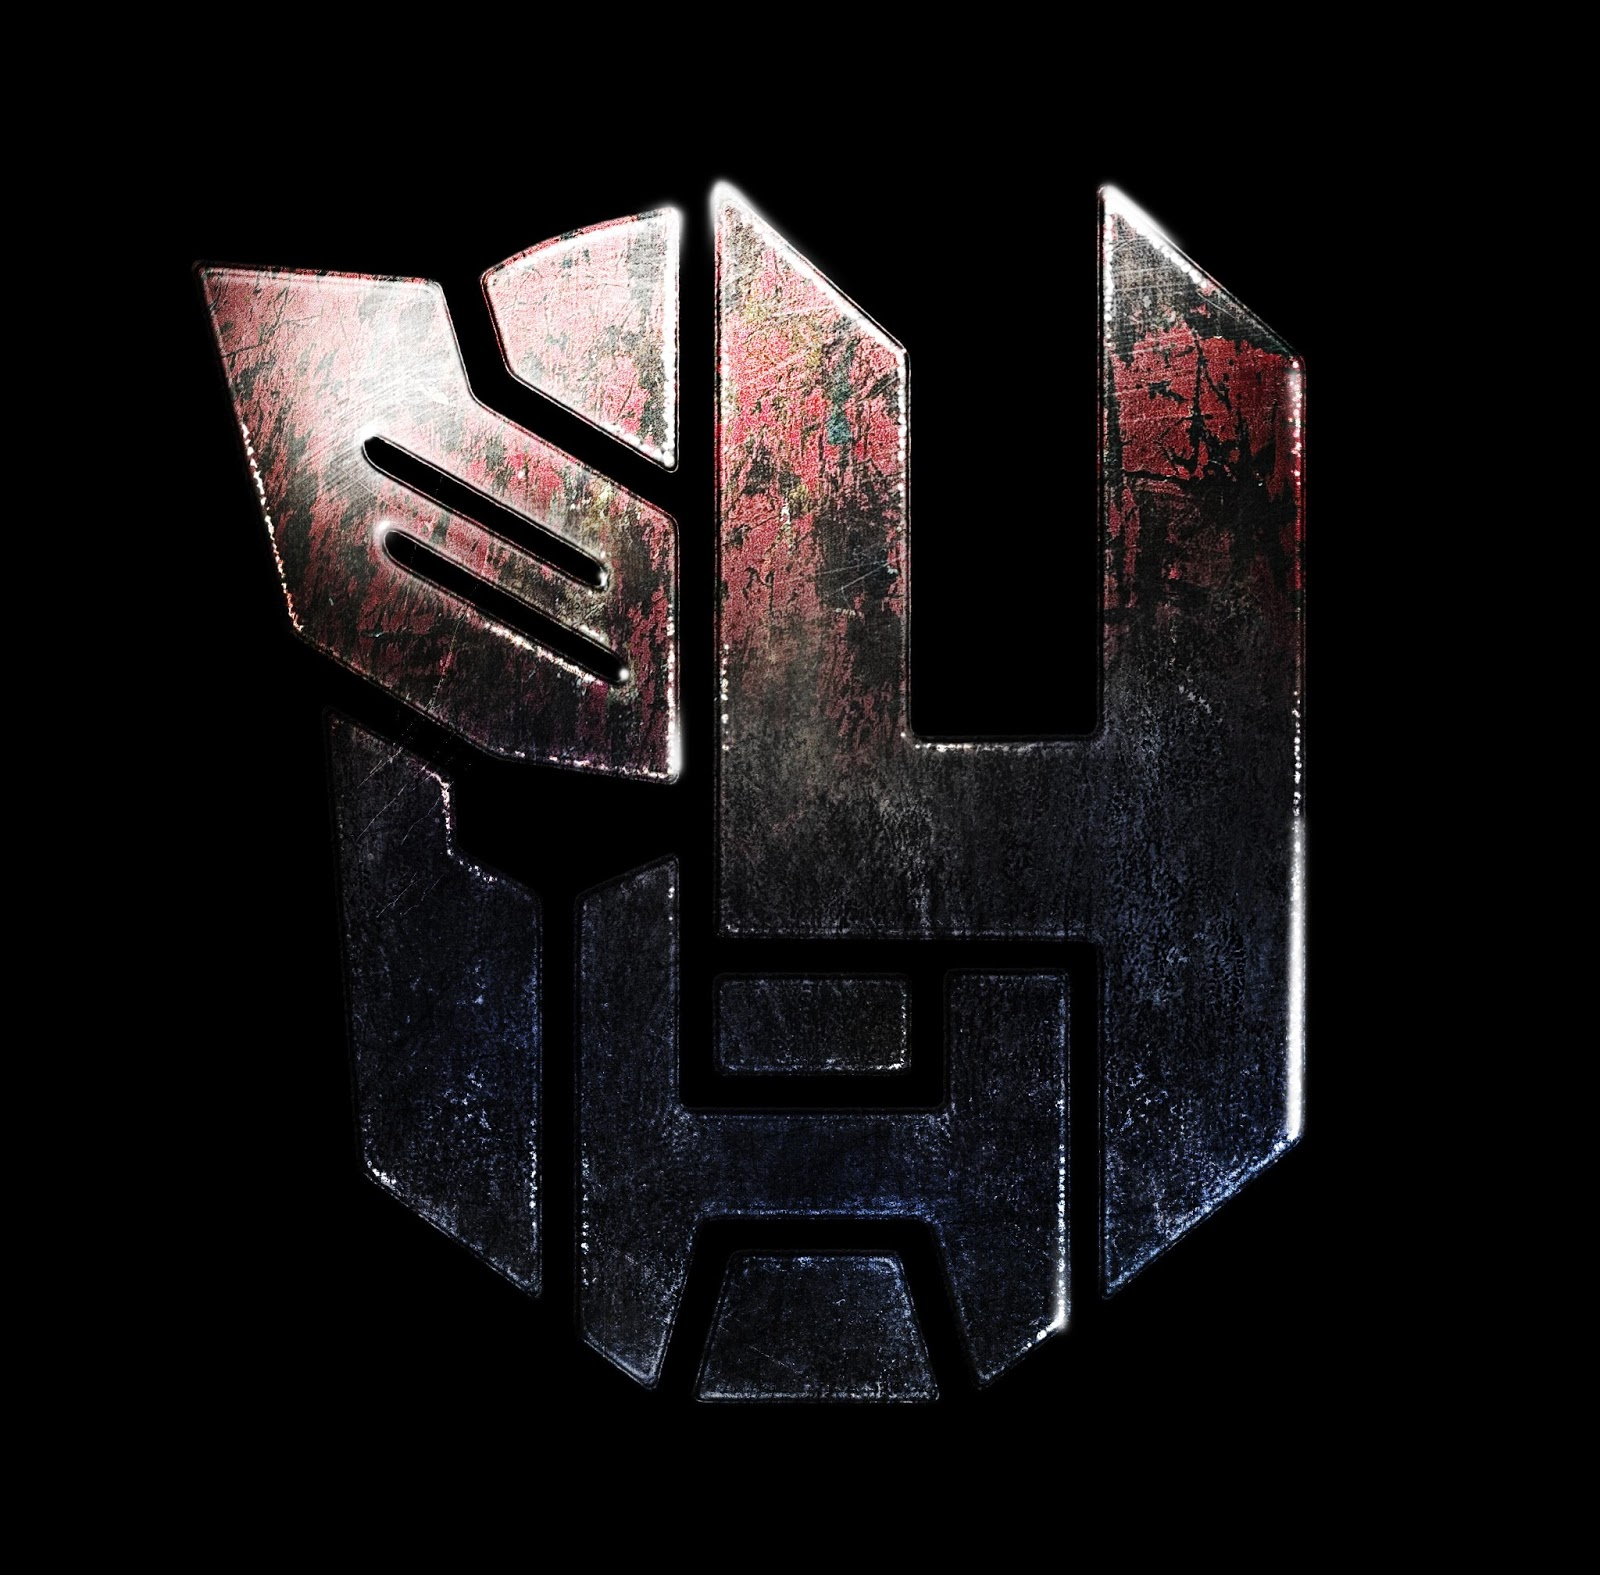 transformers live action movie blog tflamb names of two